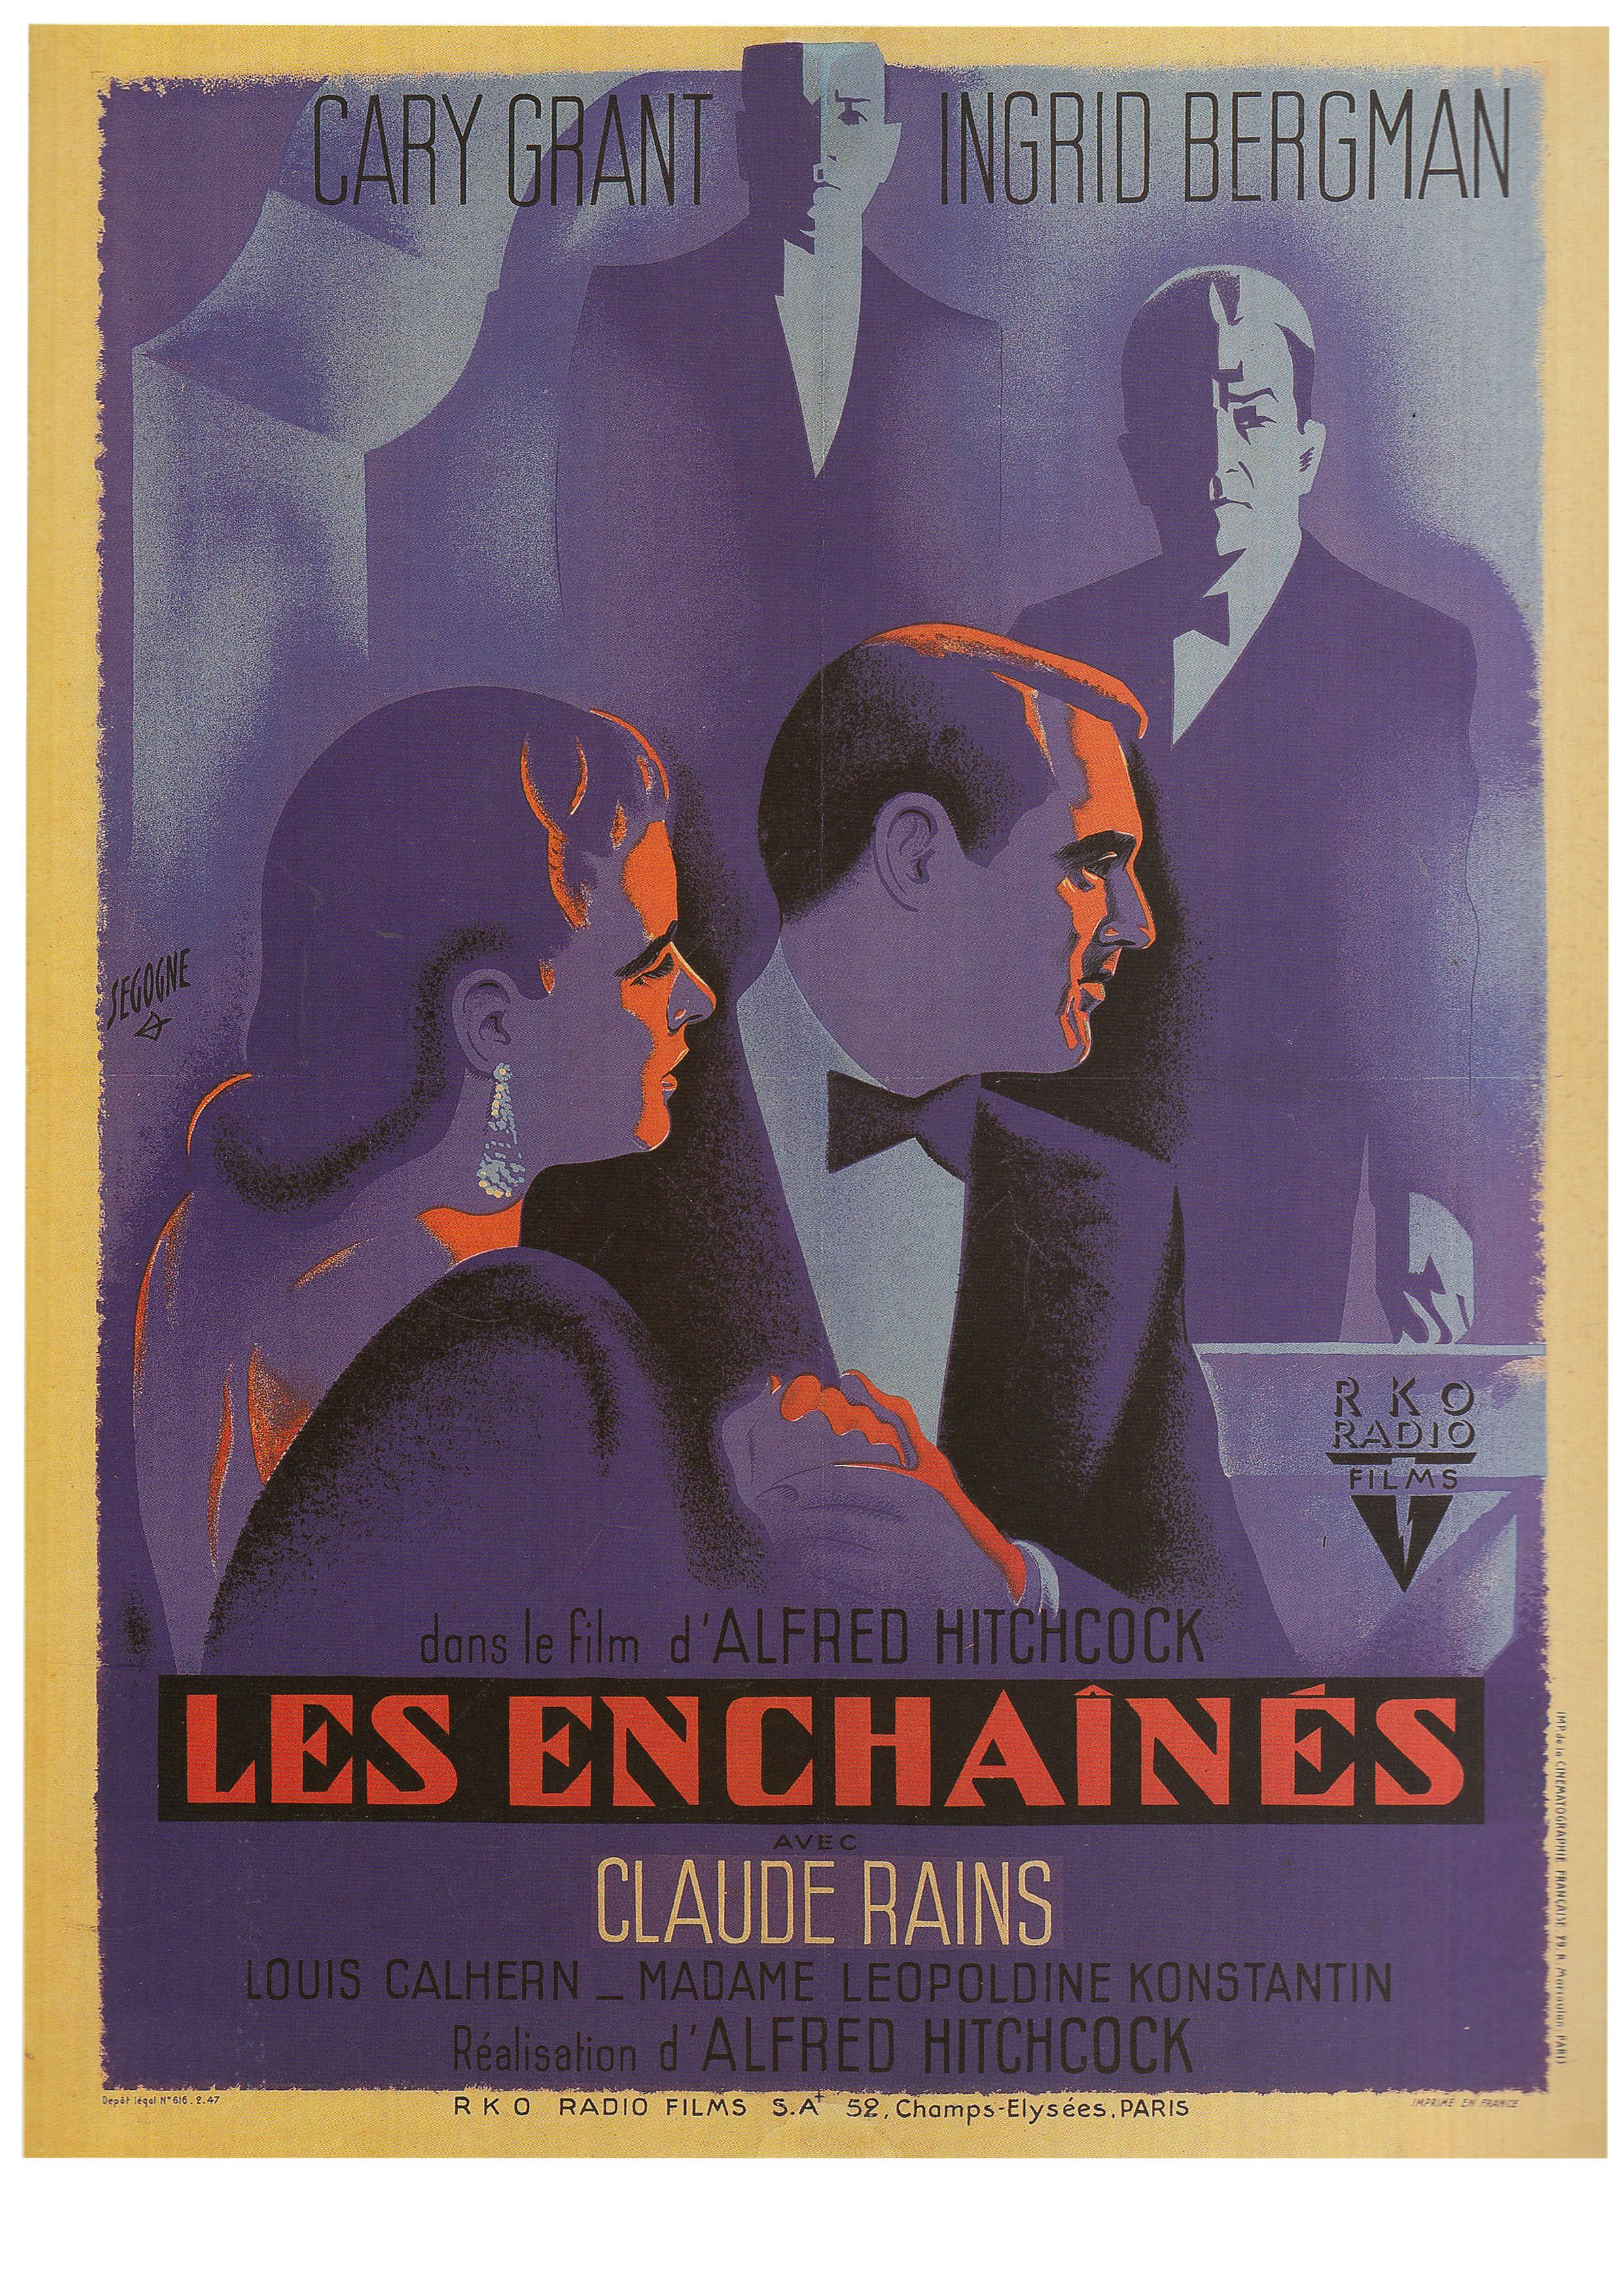 Notorious Les Enchaines 1946 Art By Pierre Segogne Book Film Posters Of The 1940s Tony Nourma Movie Posters French Movie Posters Movie Posters Vintage